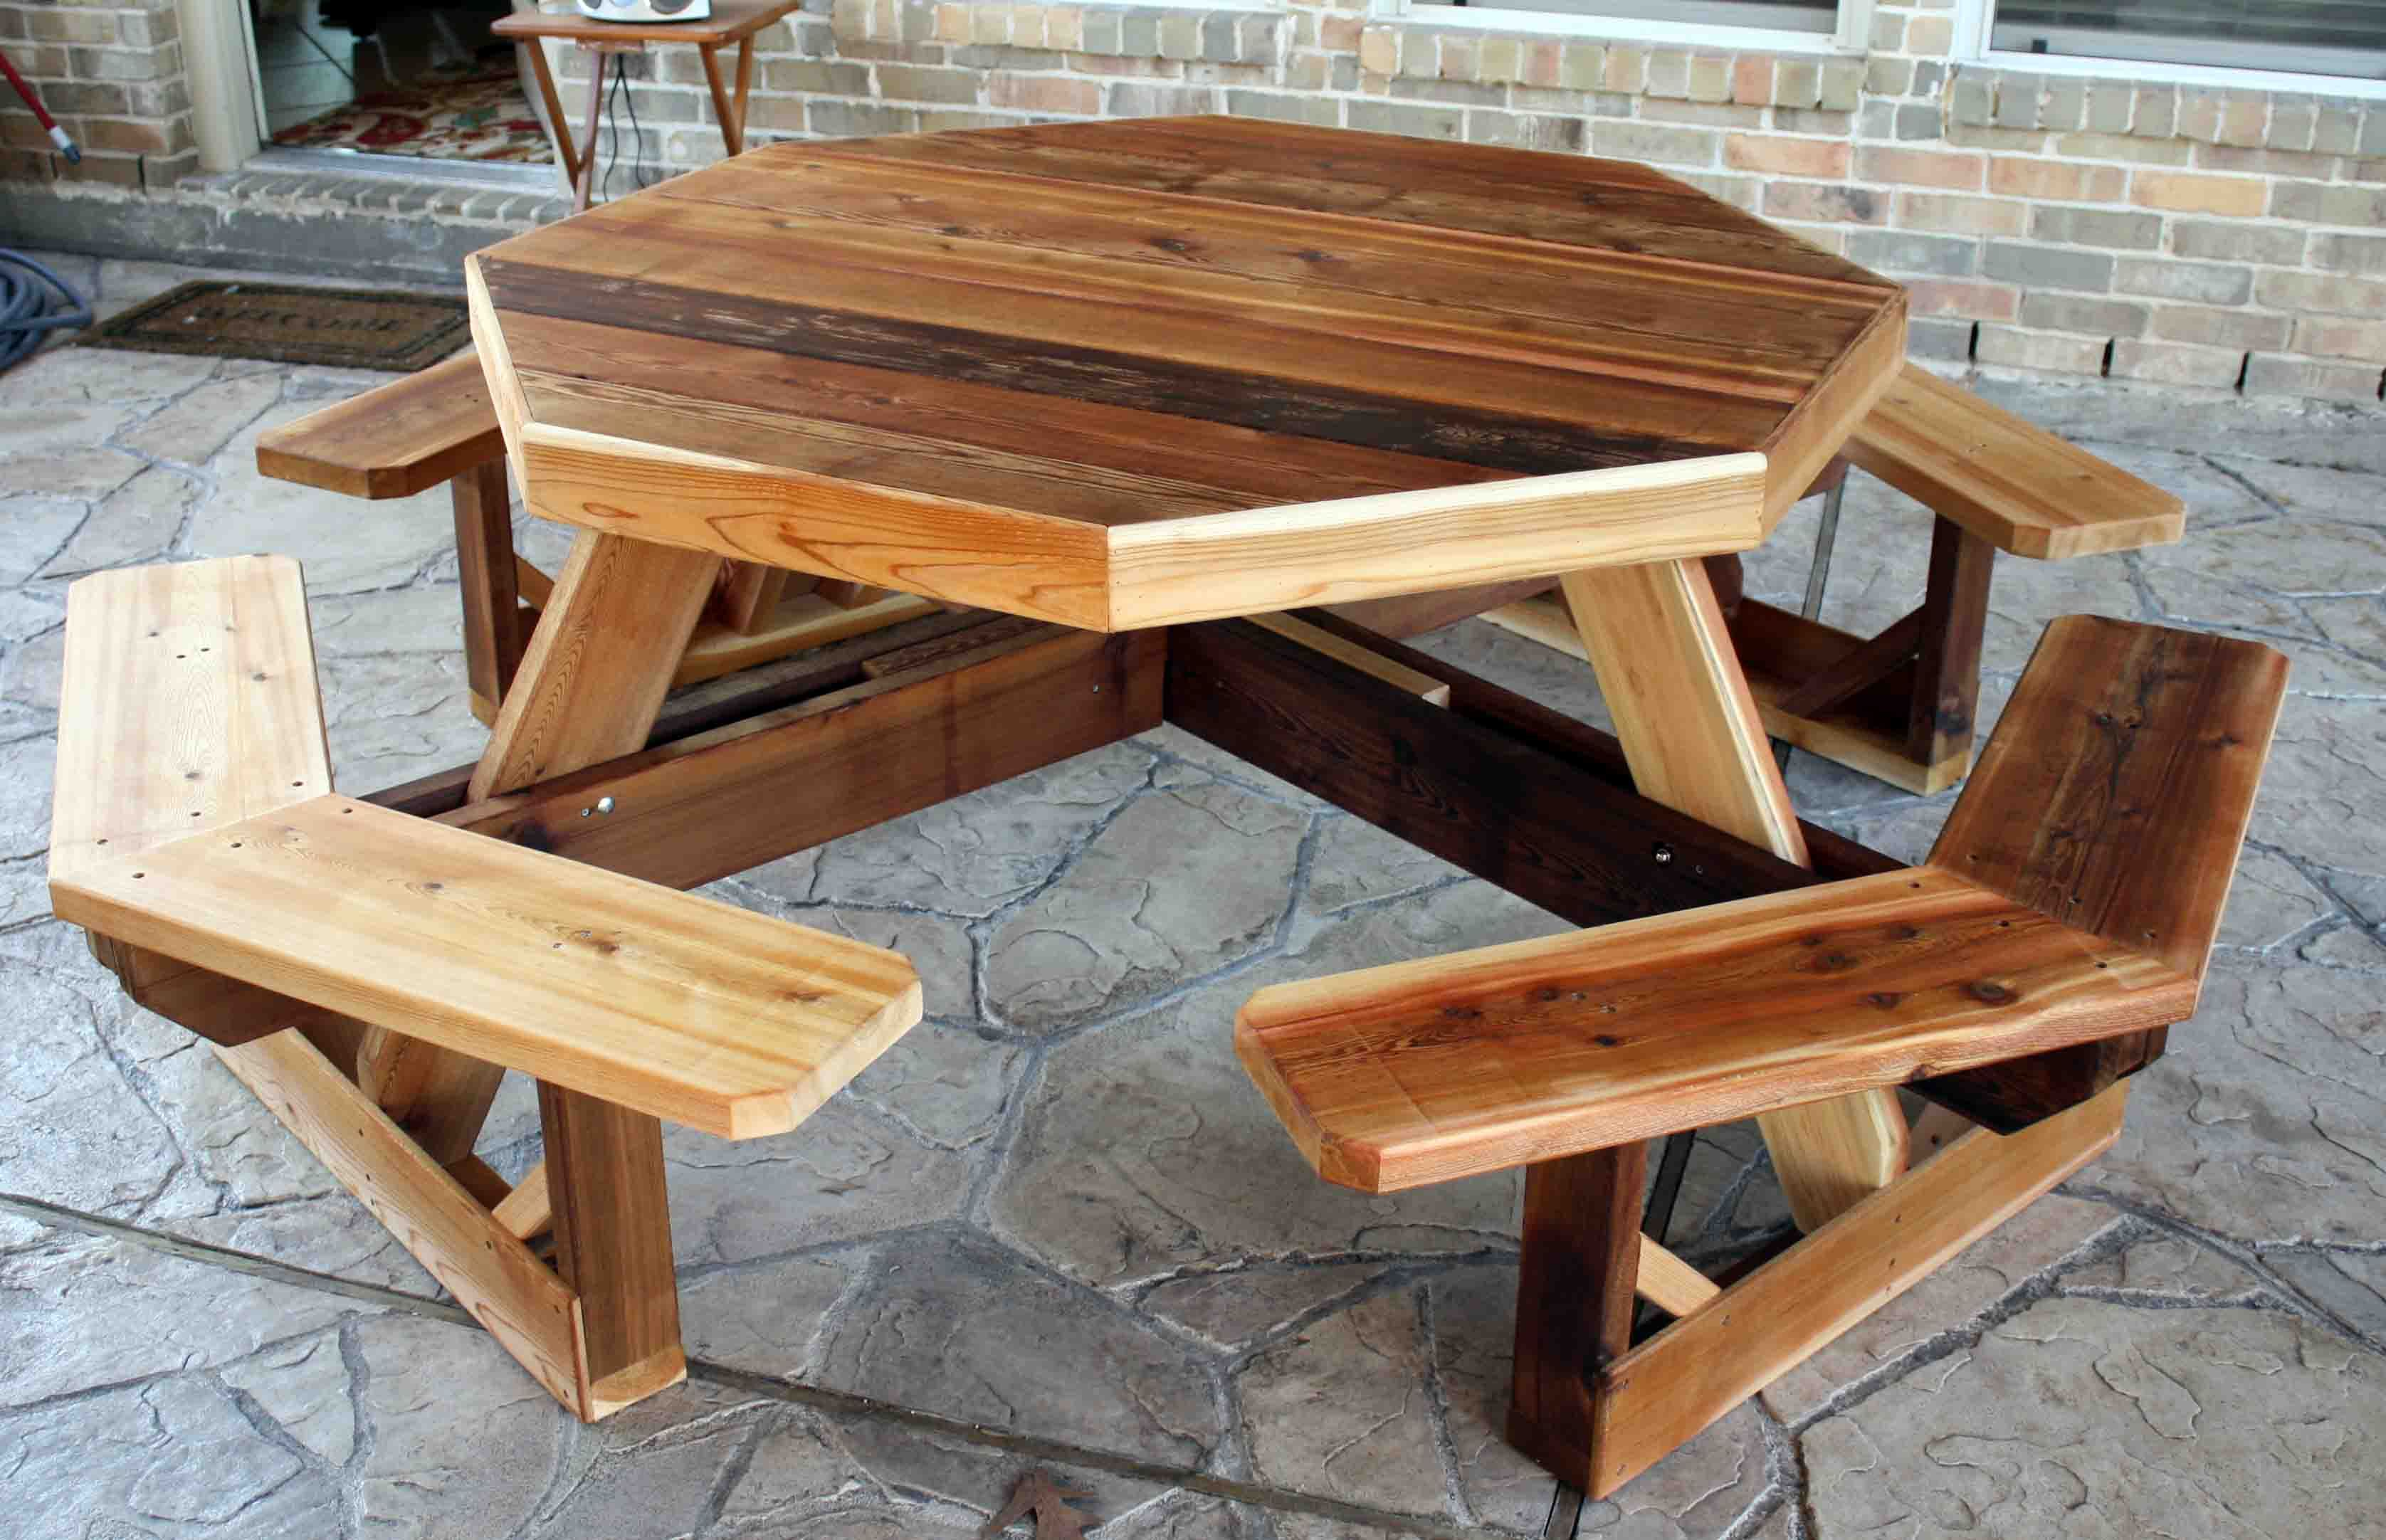 Octagonal Picnic Table Plans Octagonal Picnic Table Plans : System Furniture  Are Ideal Furniture Pieces Which